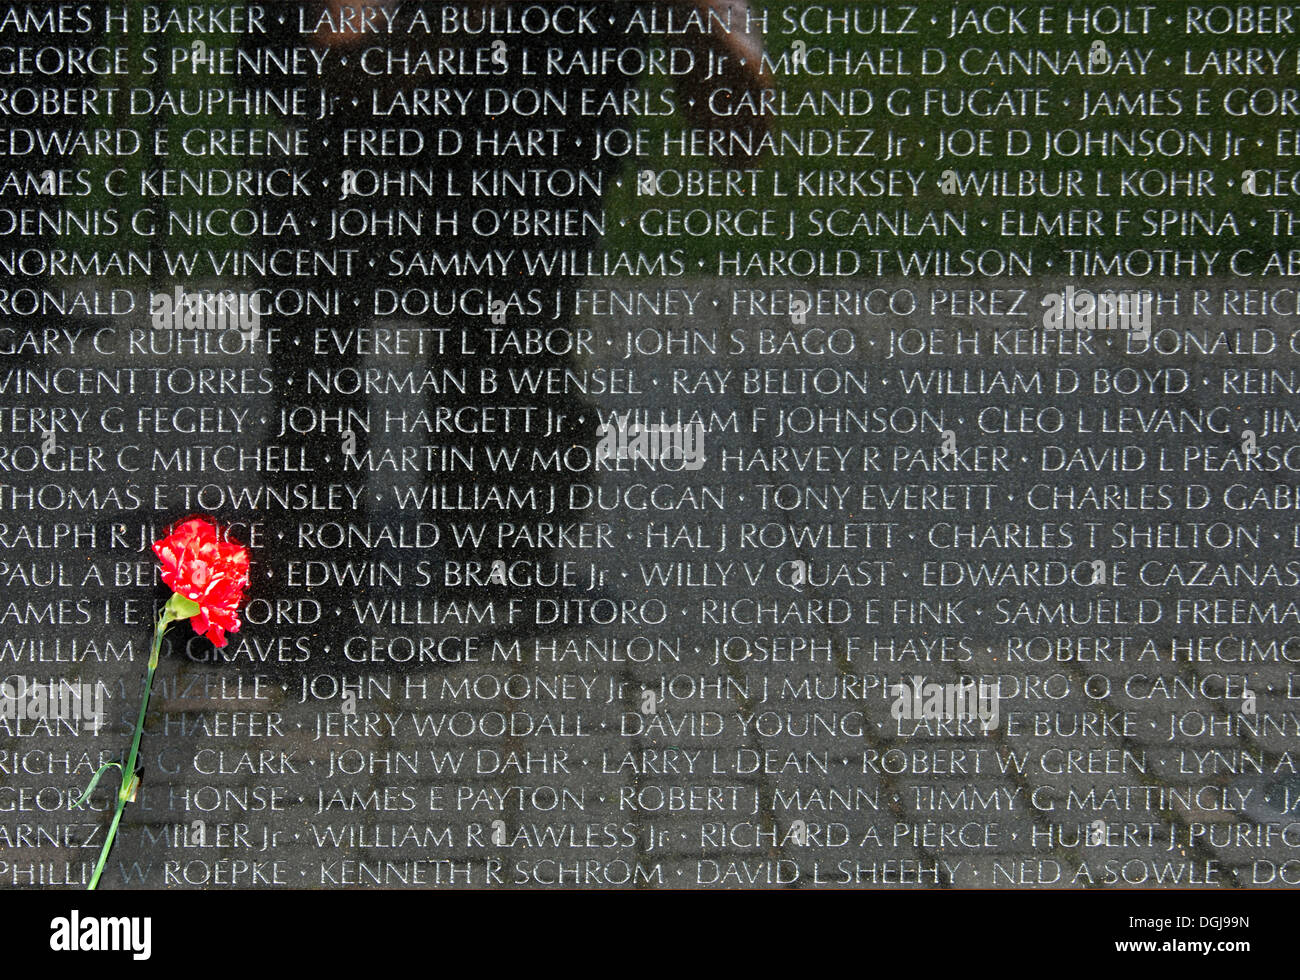 Red carnation in front of a tablet with the names of fallen US soldiers, National Memorial to those killed in the Vietnam War - Stock Image